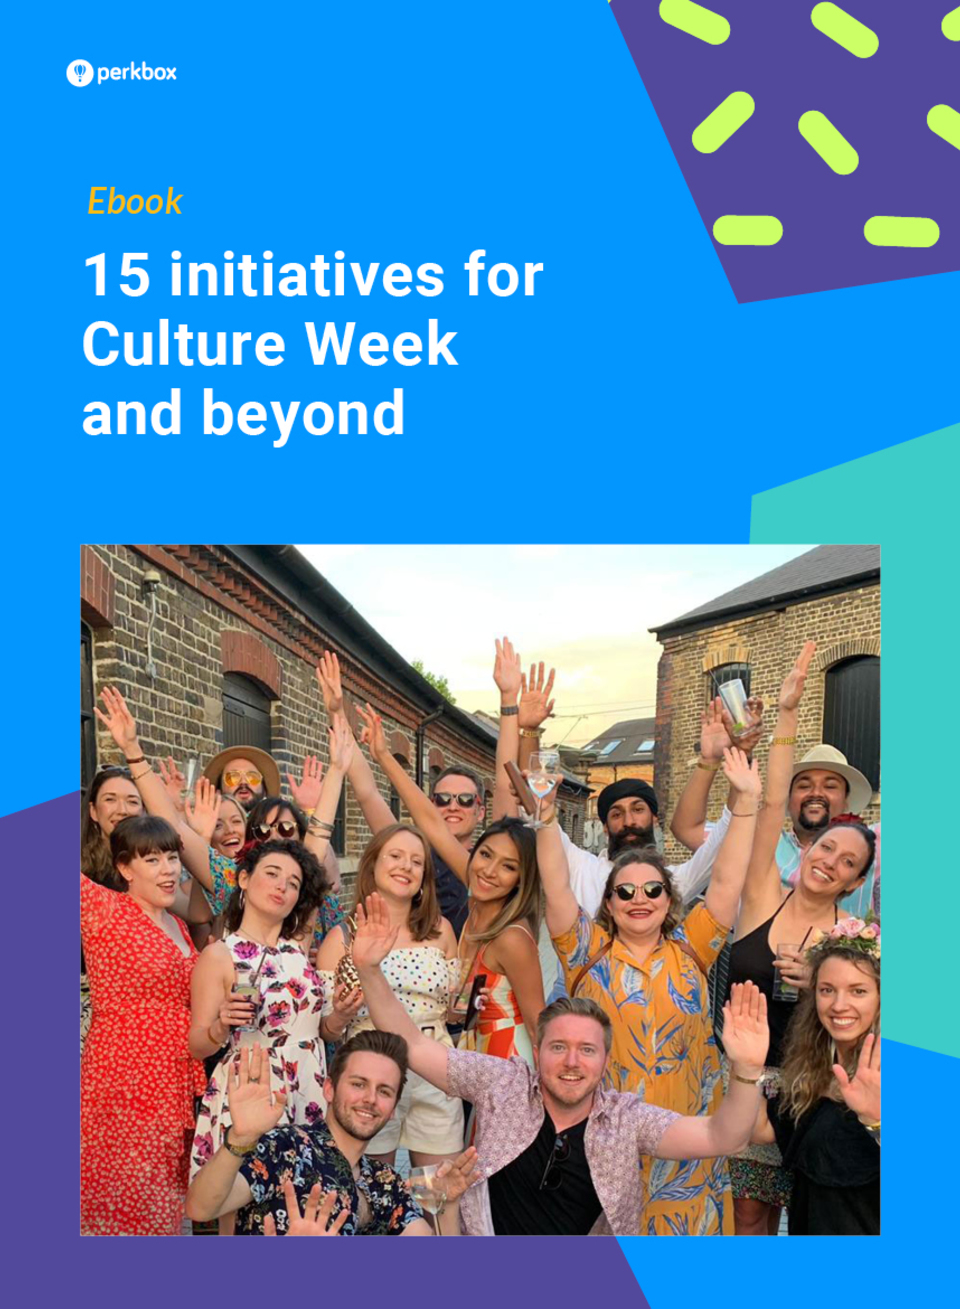 15 initiatives for Culture Week and beyond